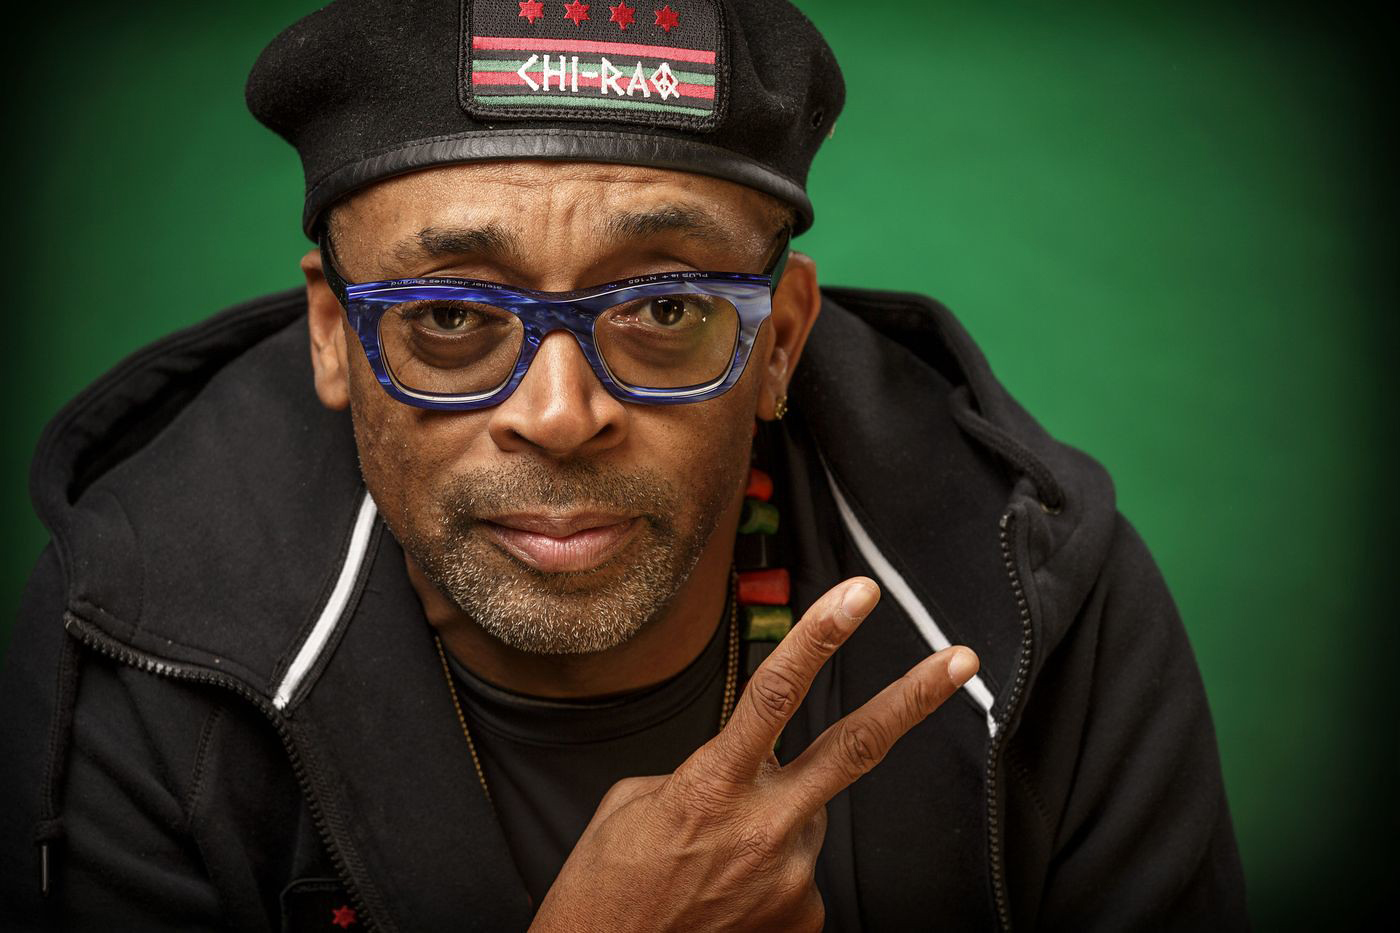 Spike Lee pictured in cap and giving the peace sign